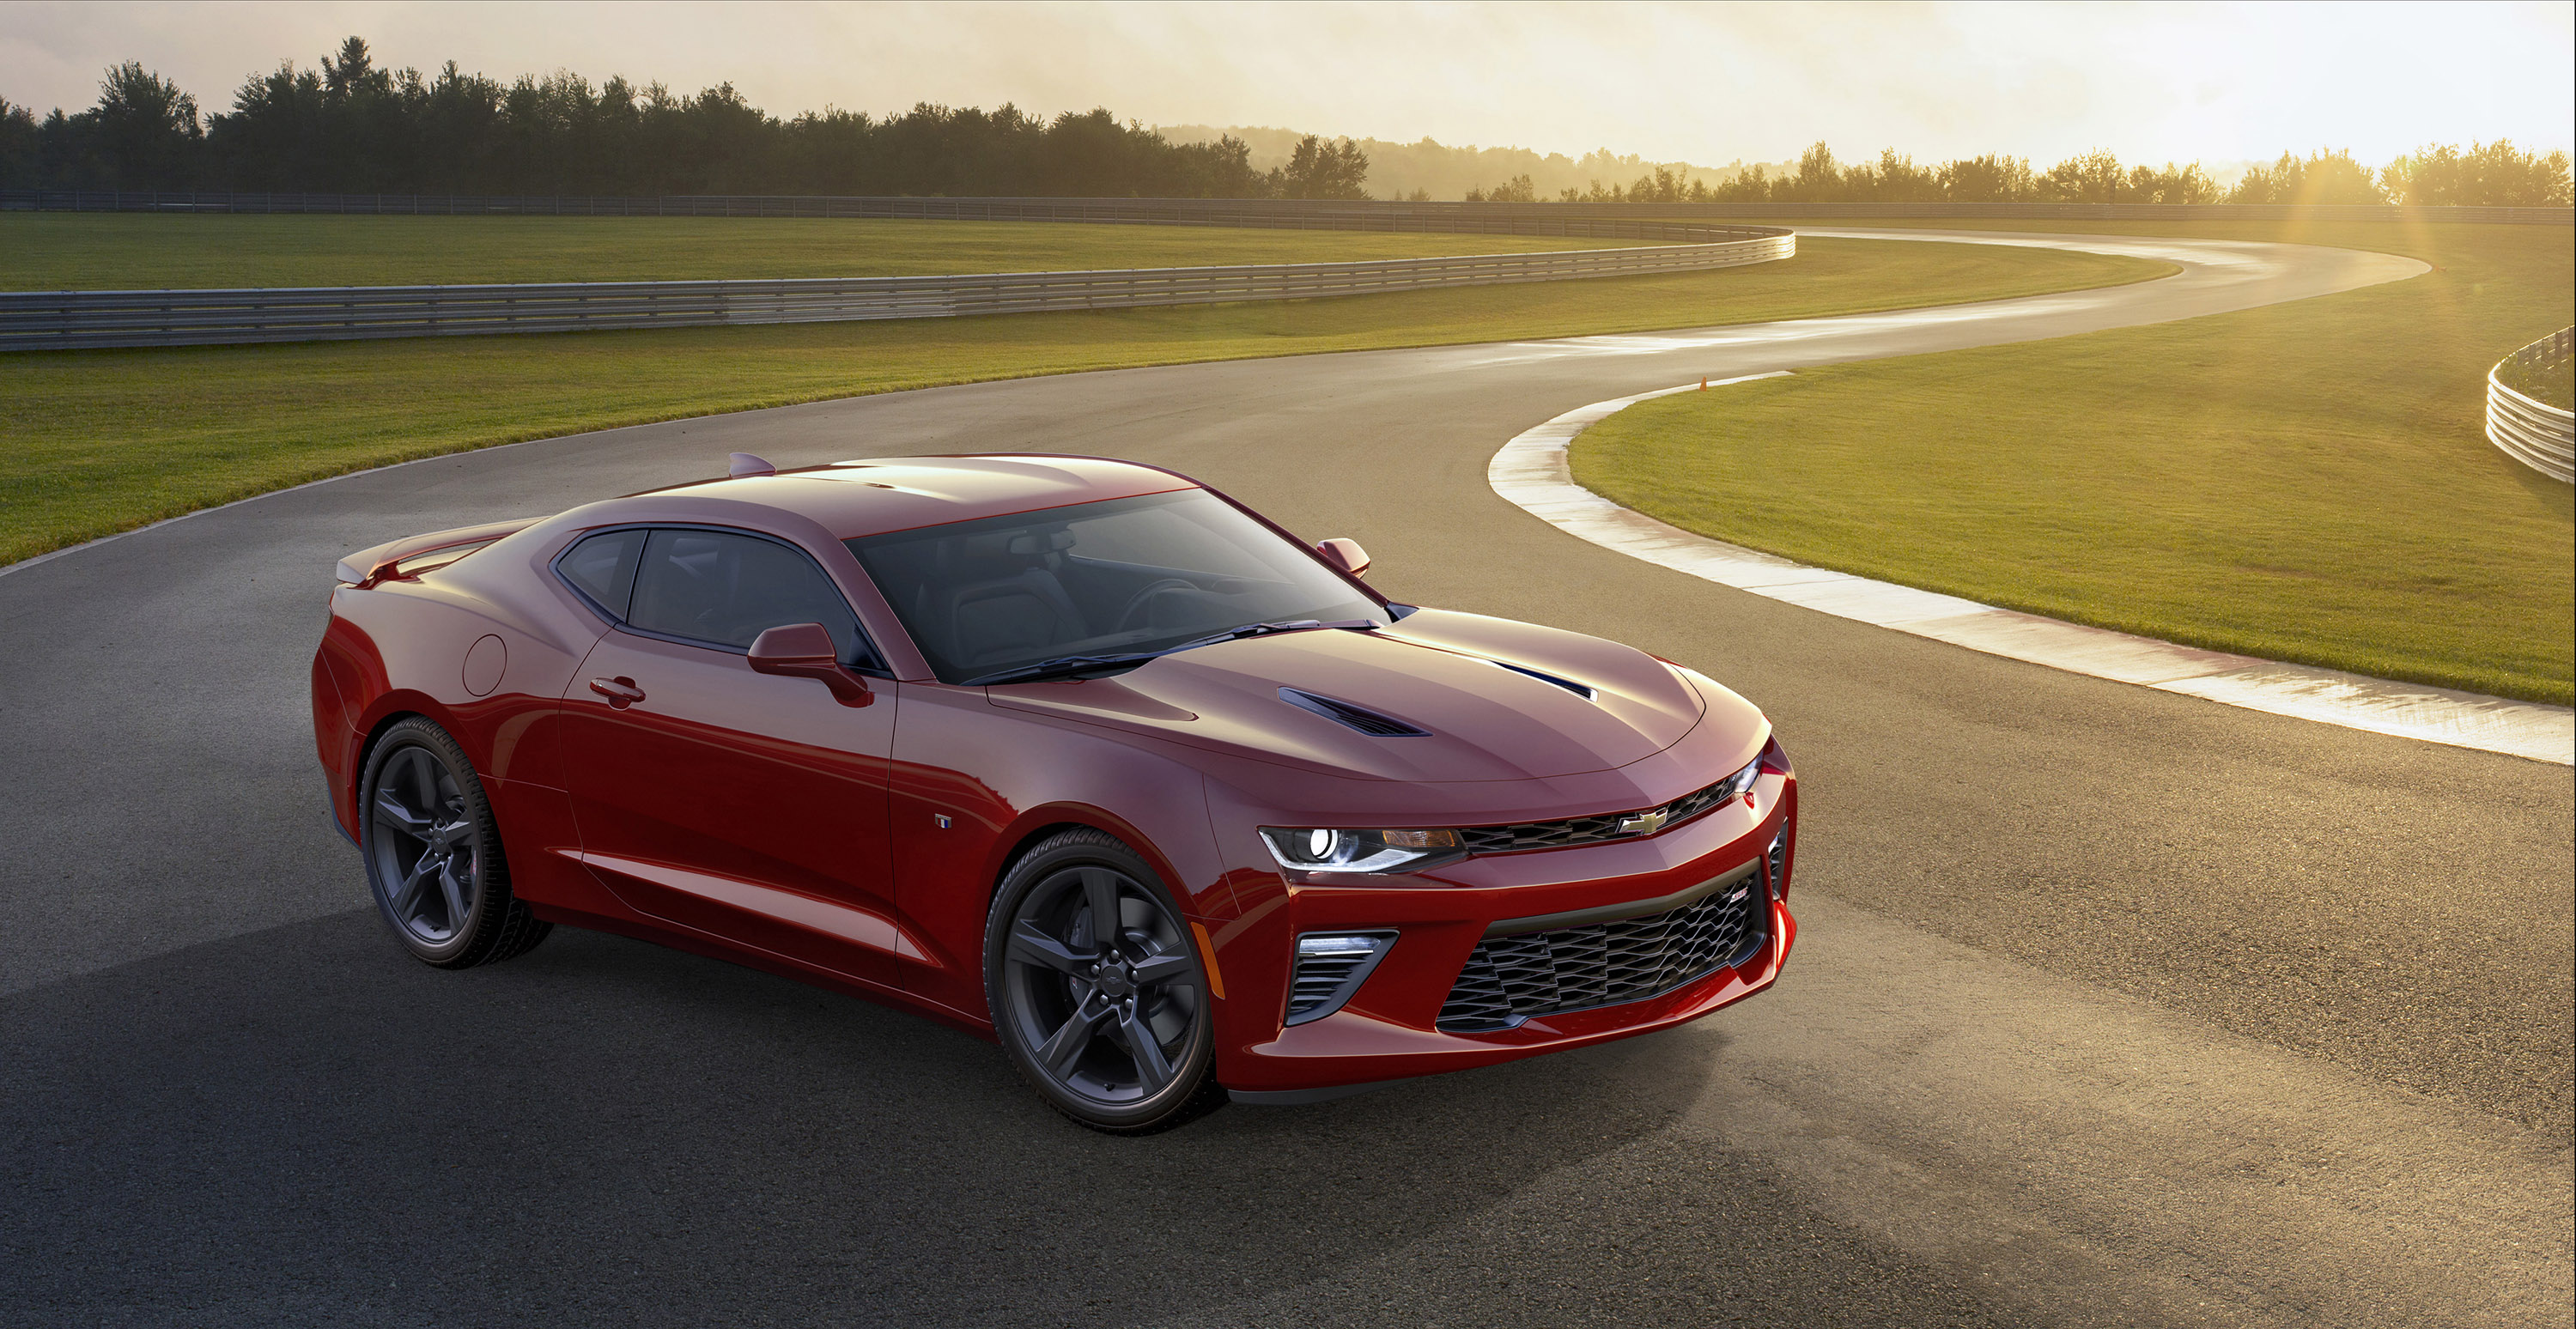 Meet the Sixth Generation Chevy Camaro